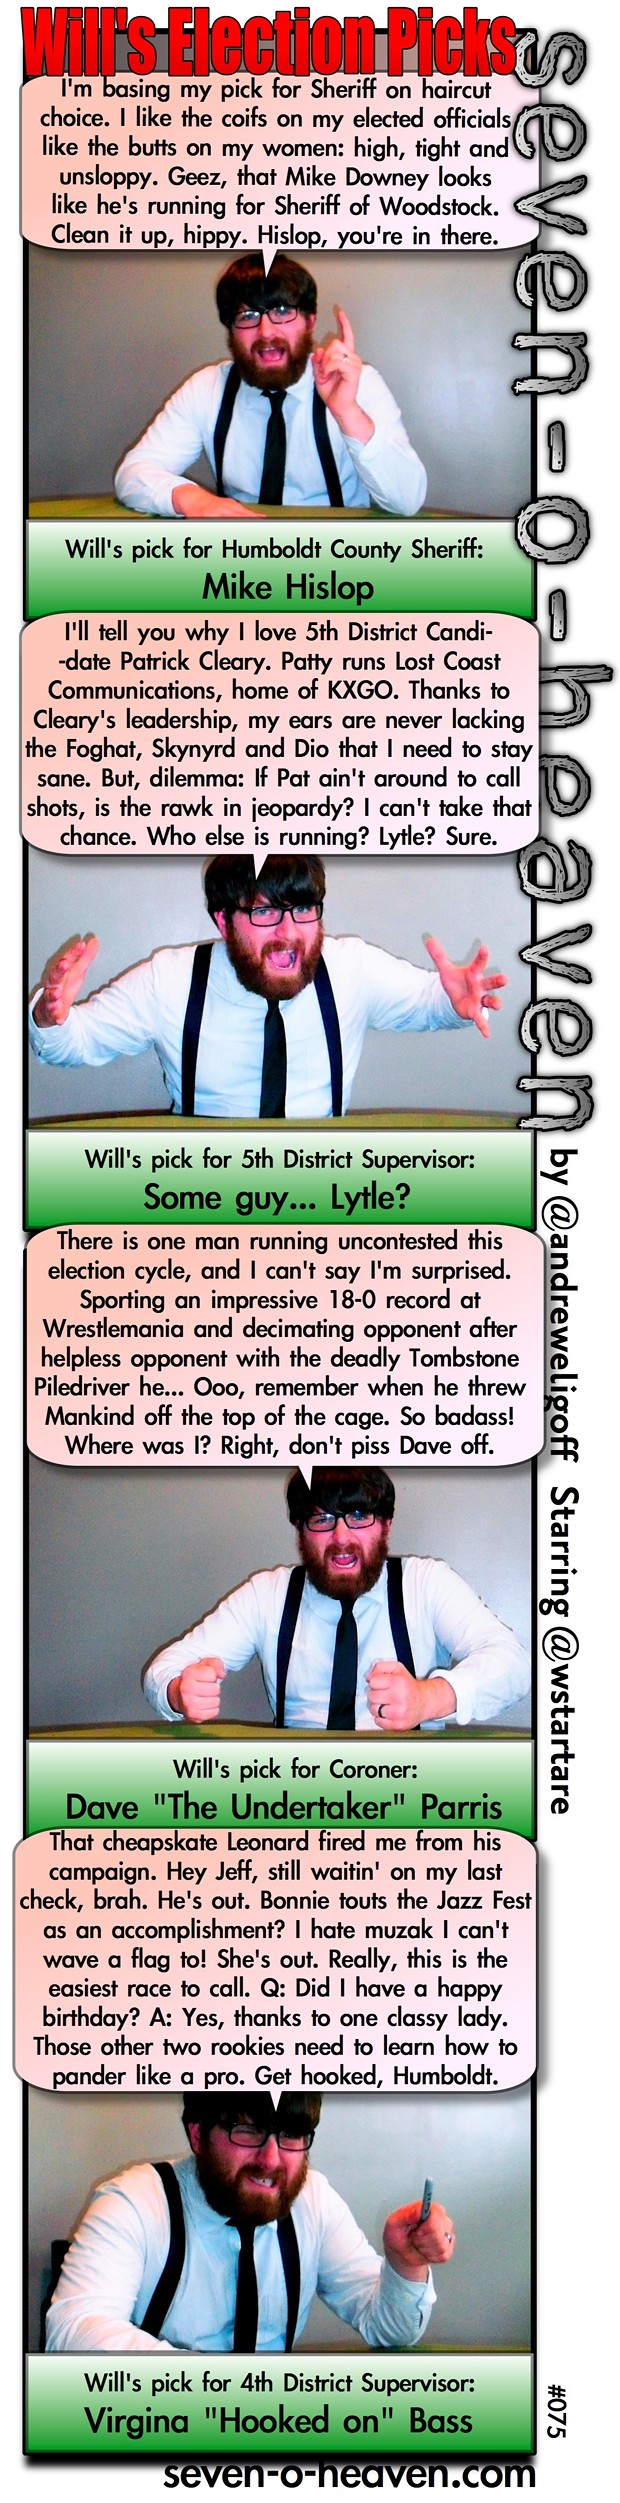 Will's Election Picks